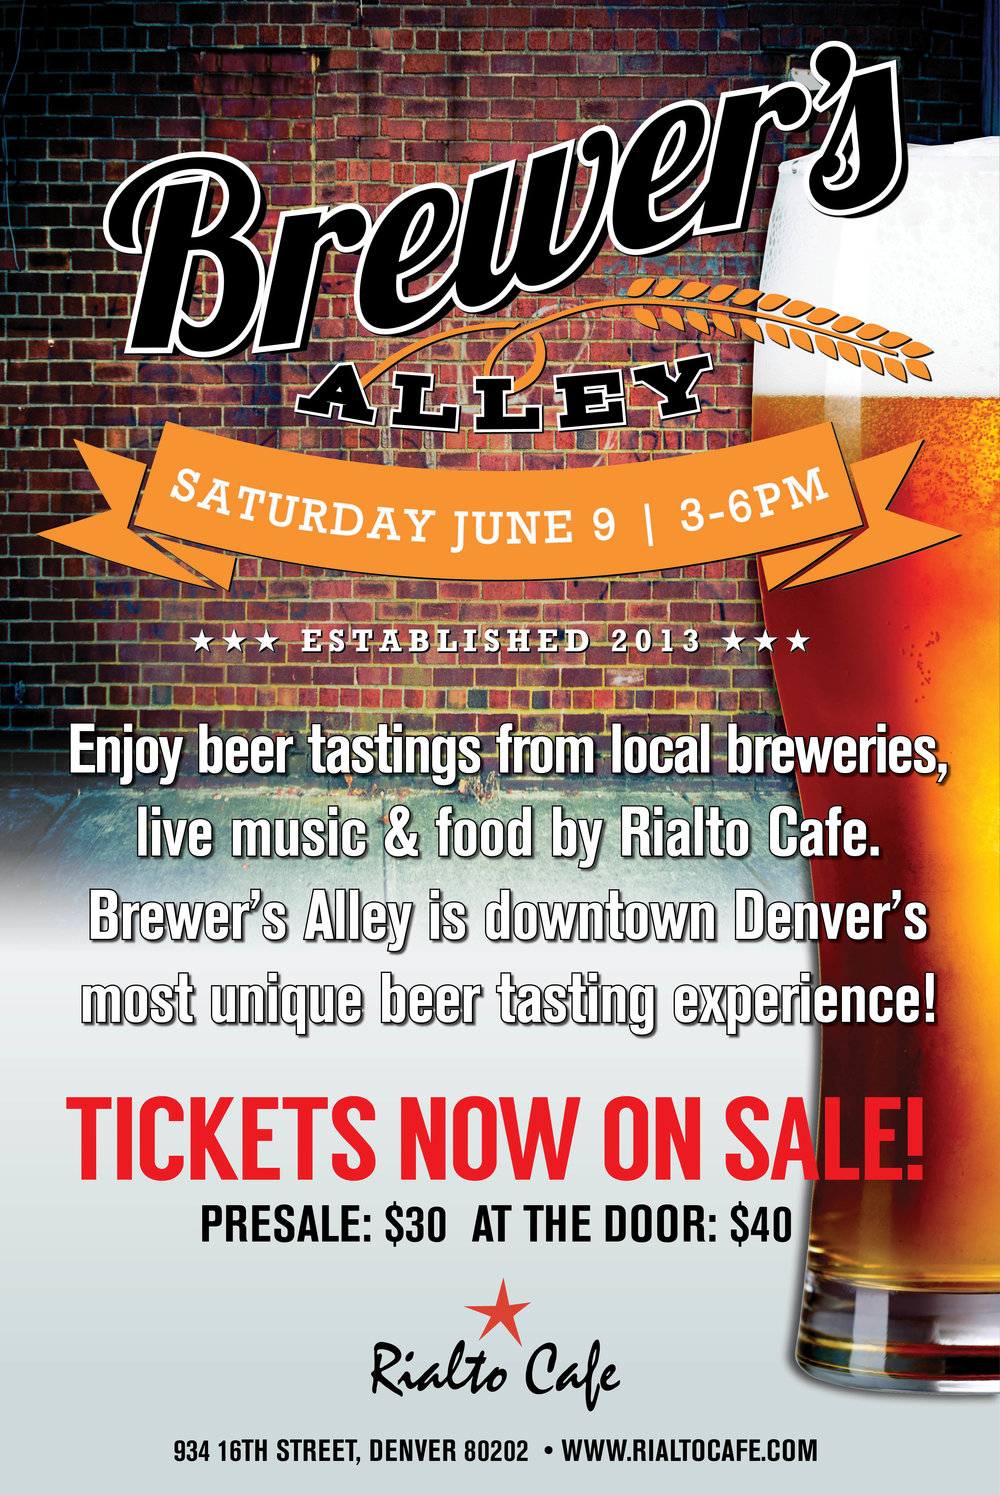 Join Us for Brewer's Alley - Denver's most unique beer tasting experience!